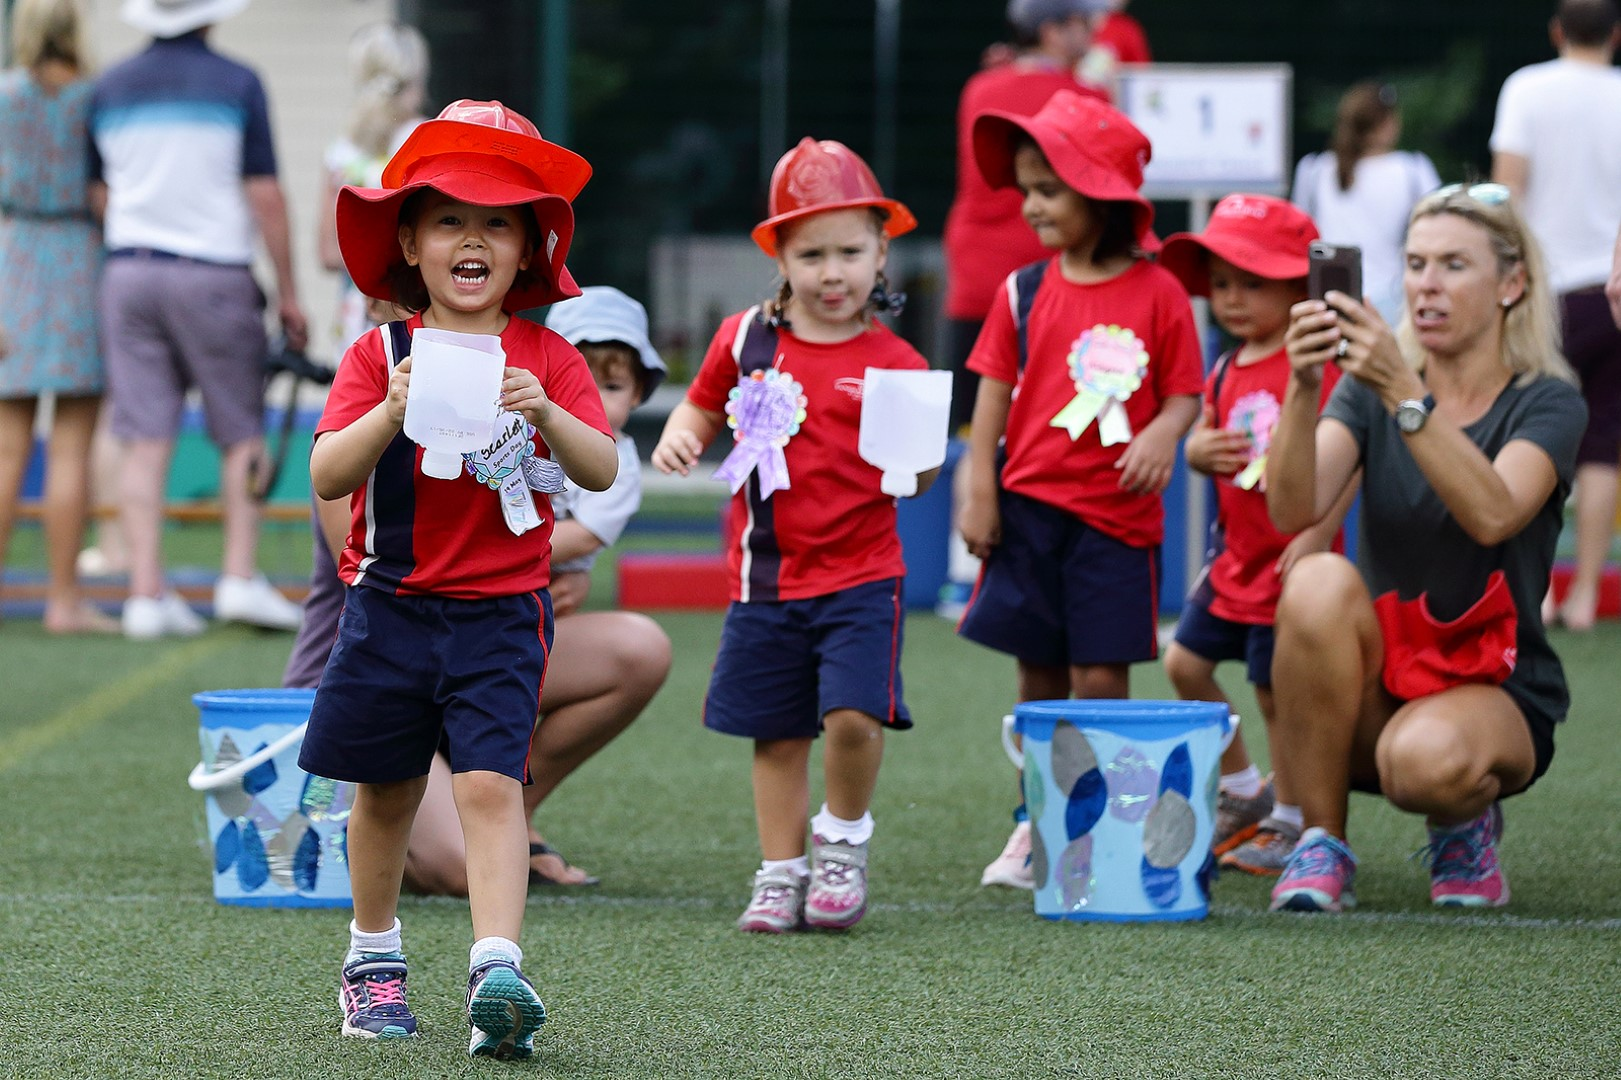 EYFS students sports day